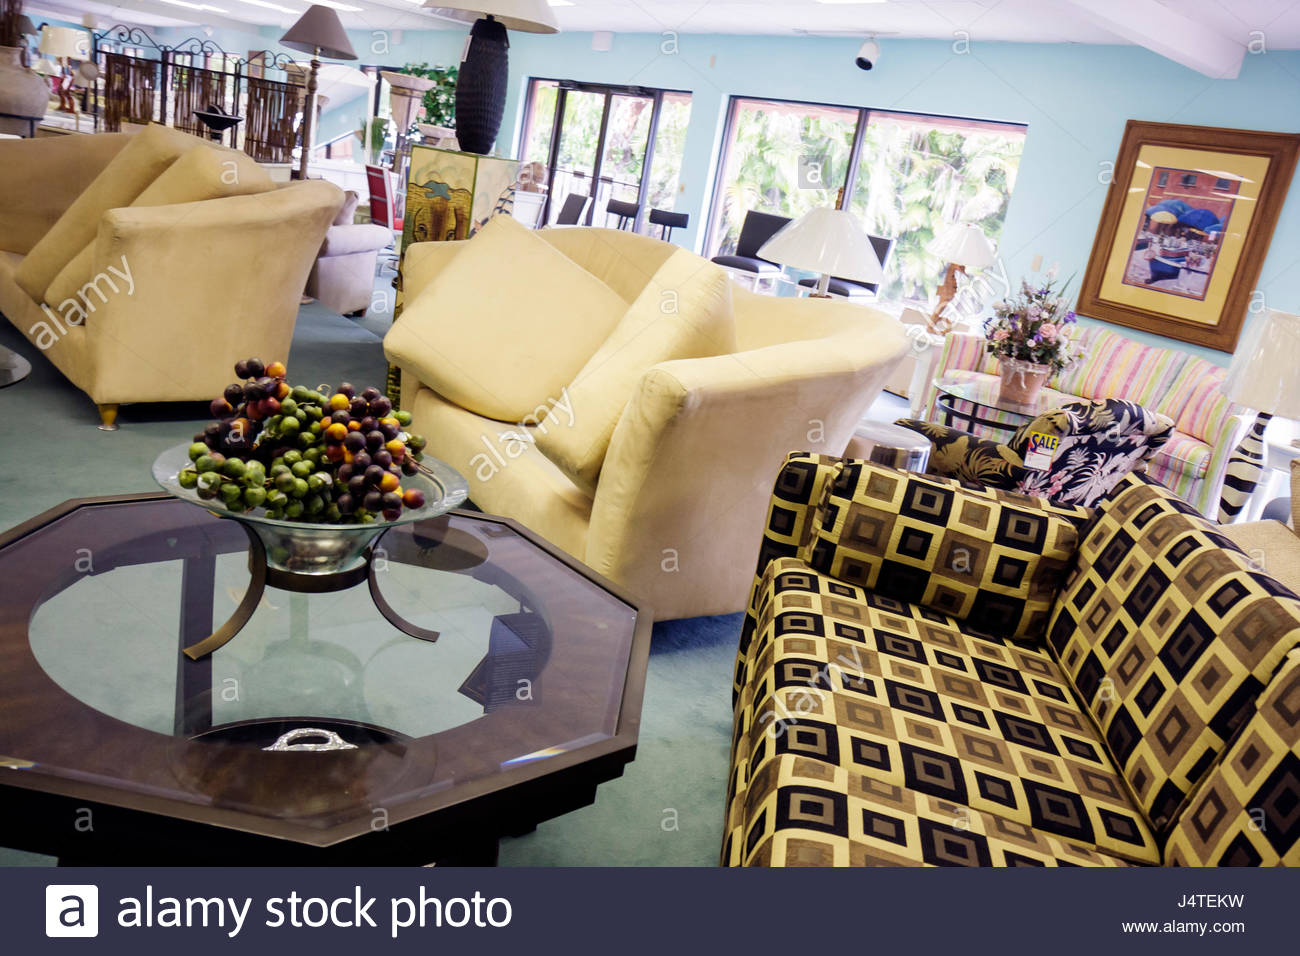 Naples Florida Furniture Store Business Retail Showroom Couch Sofa